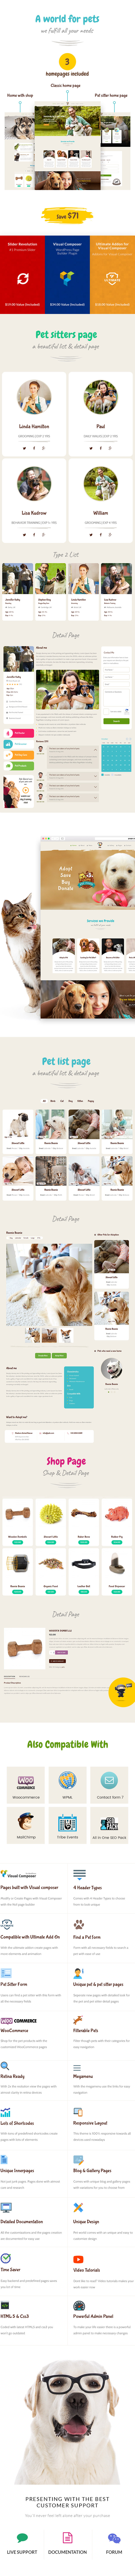 Download Pet World  Pet Sitter and Pet Shop Animal Care WordPress Theme (Creative)  A Complete Pet sitter Job directory WordPress theme with options for Pet sitting info Job posting  management and Job Search Service requirement. Pet and Pet sitter profiles are well managed to provide better search experience with tags and categories. Theme comes with tons of essential design elements such as gallery blog and header designs powerful backend and drag and drop page builder Color and Font…